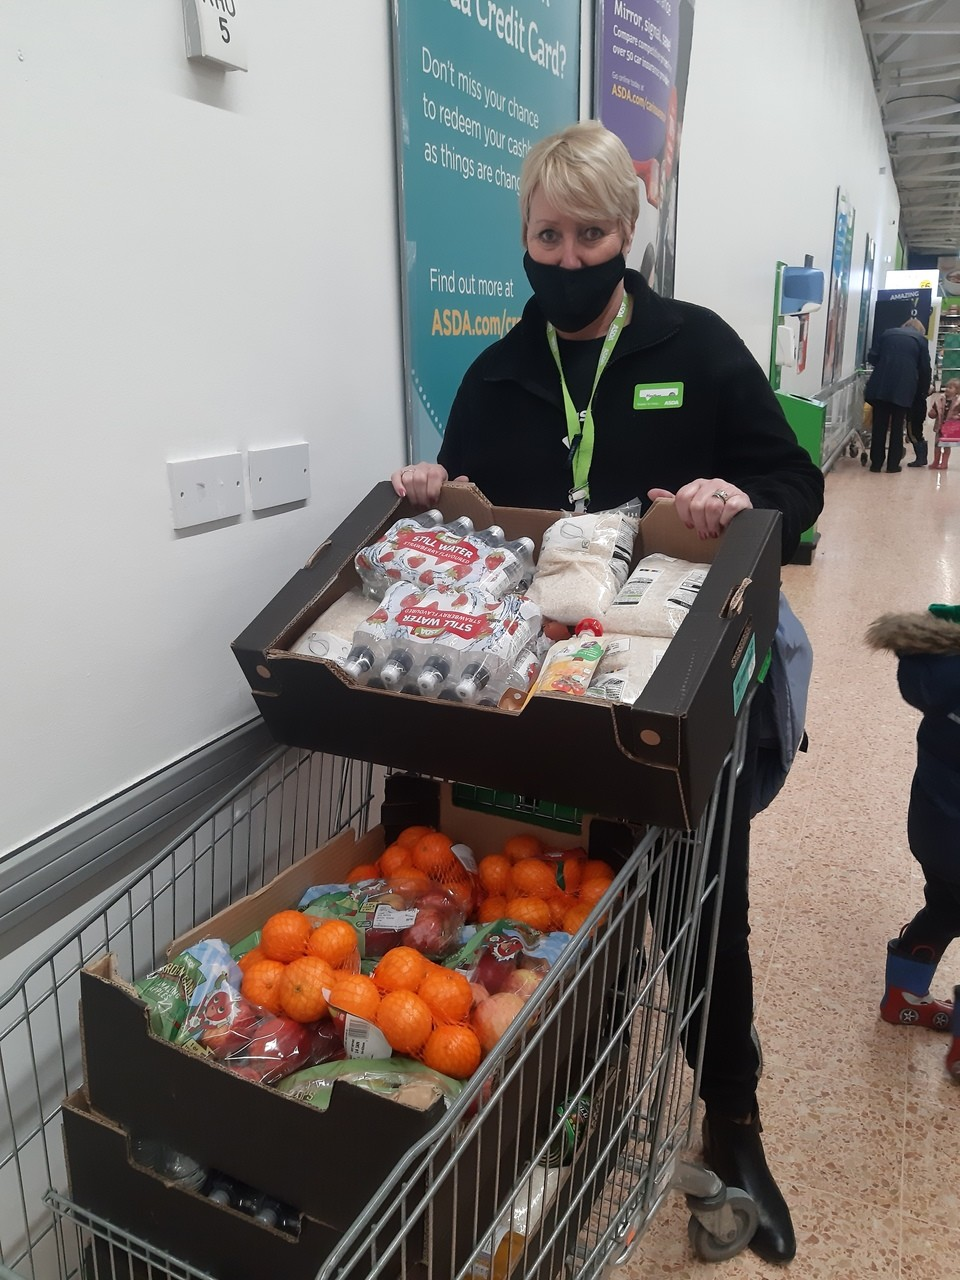 Online fundraising for White Feather Project | Asda Middlesbrough